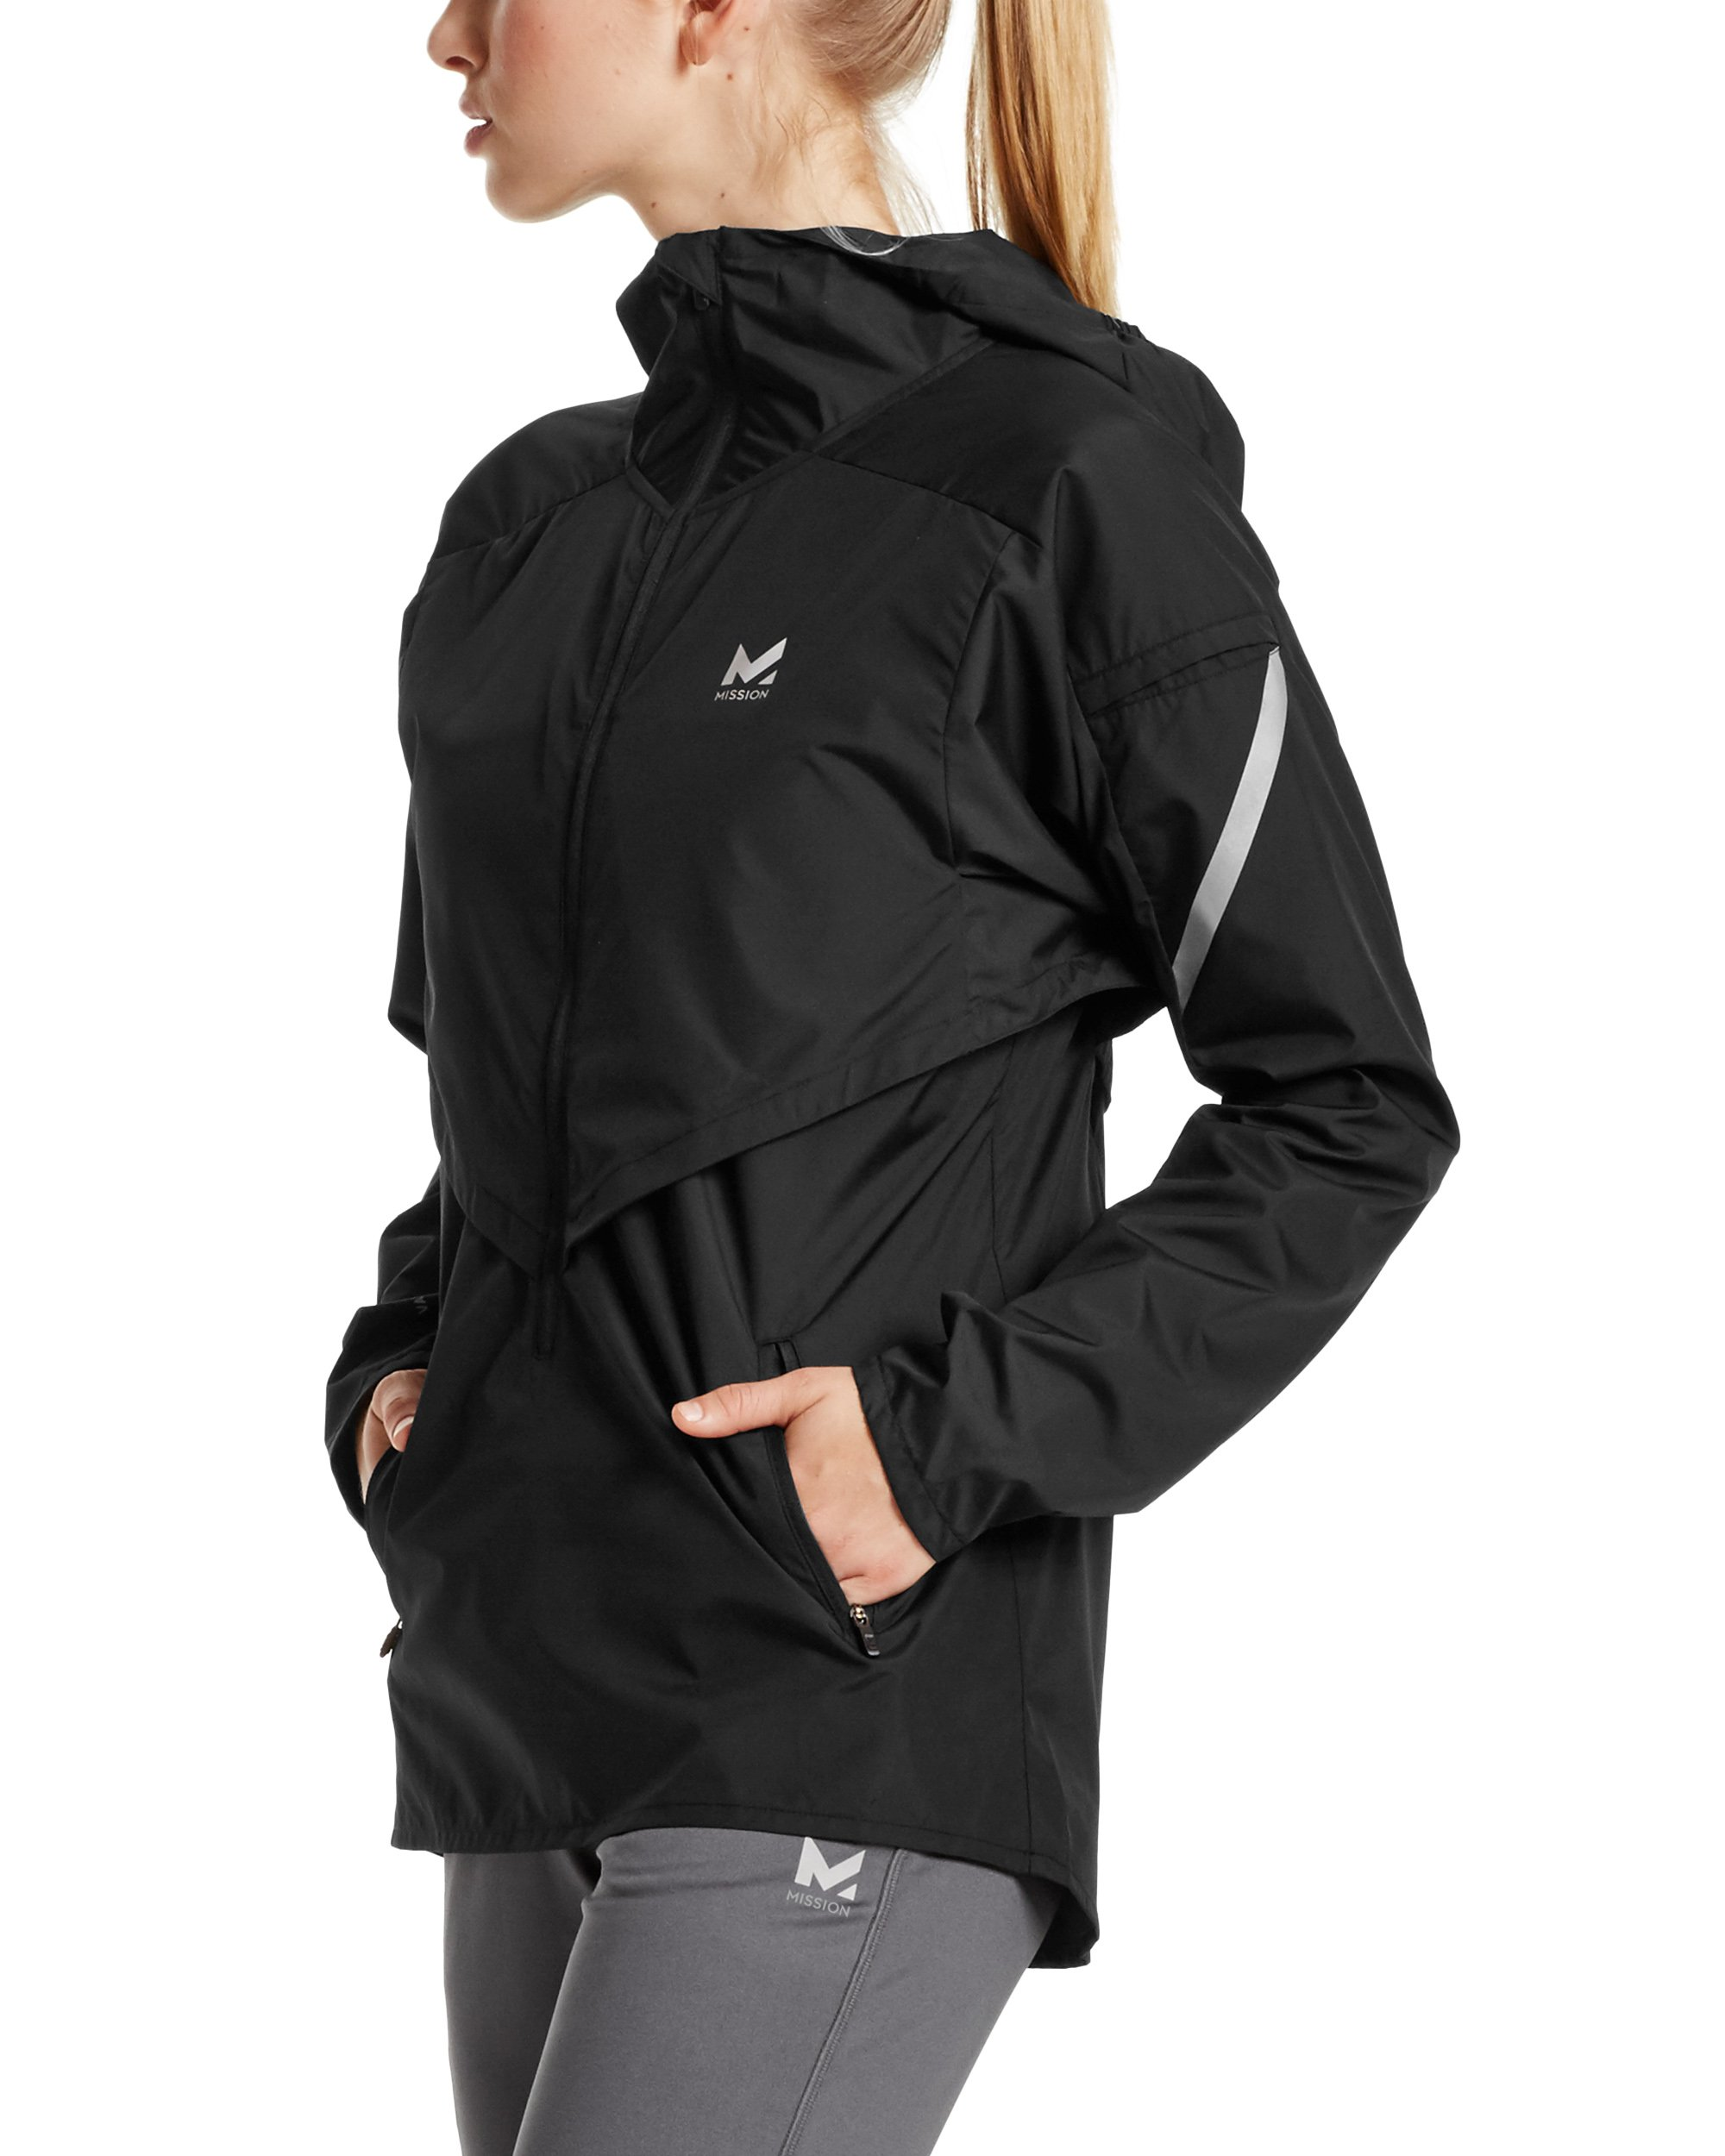 Mission Women's VaporActive Barometer Running Jacket, Moonless Night, Large by MISSION (Image #3)